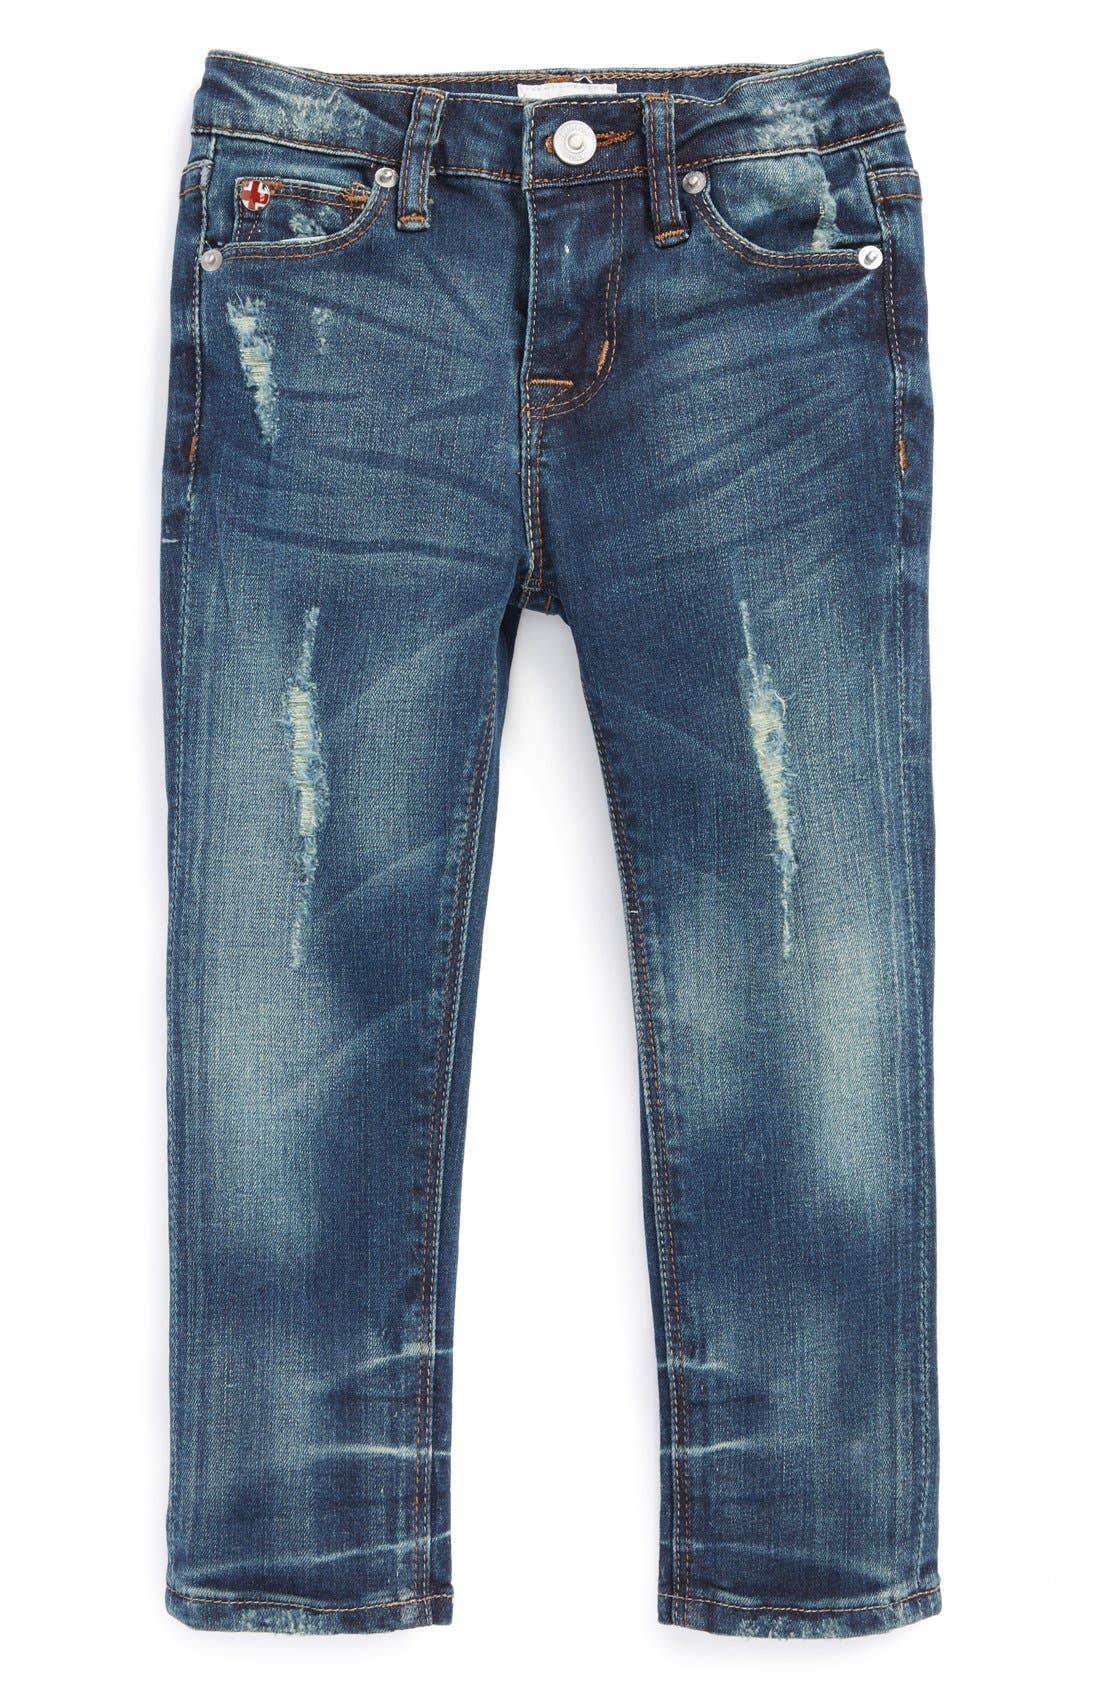 Alternate Image 2  - Hudson Kids 'Dolly' Distressed Skinny Jeans (Toddler Girls)